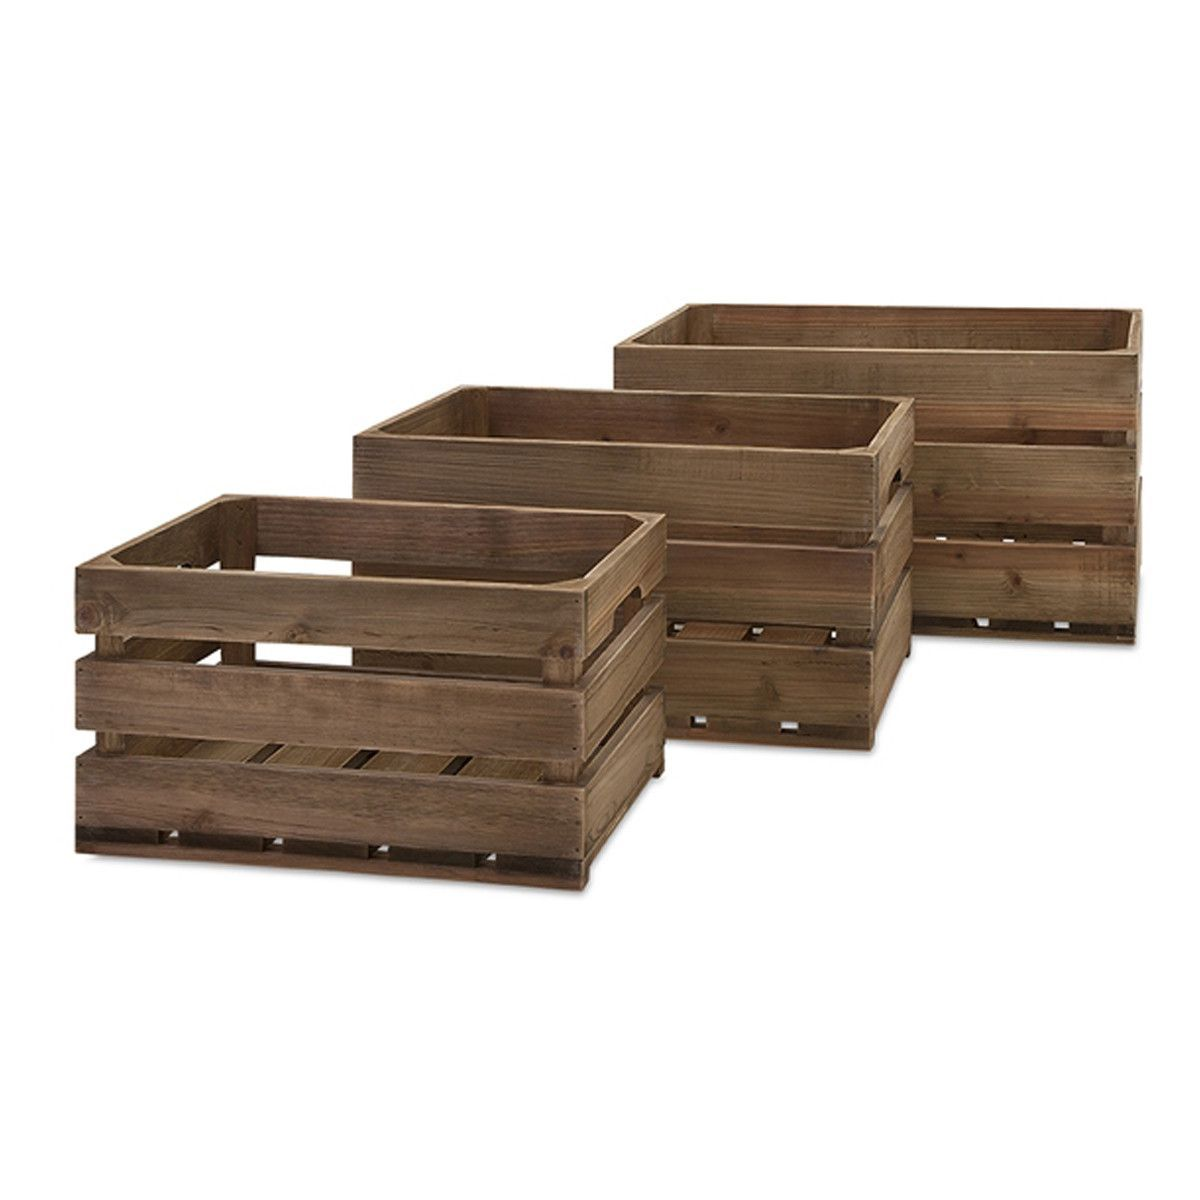 Ainsley Wood Crates, Set of 3